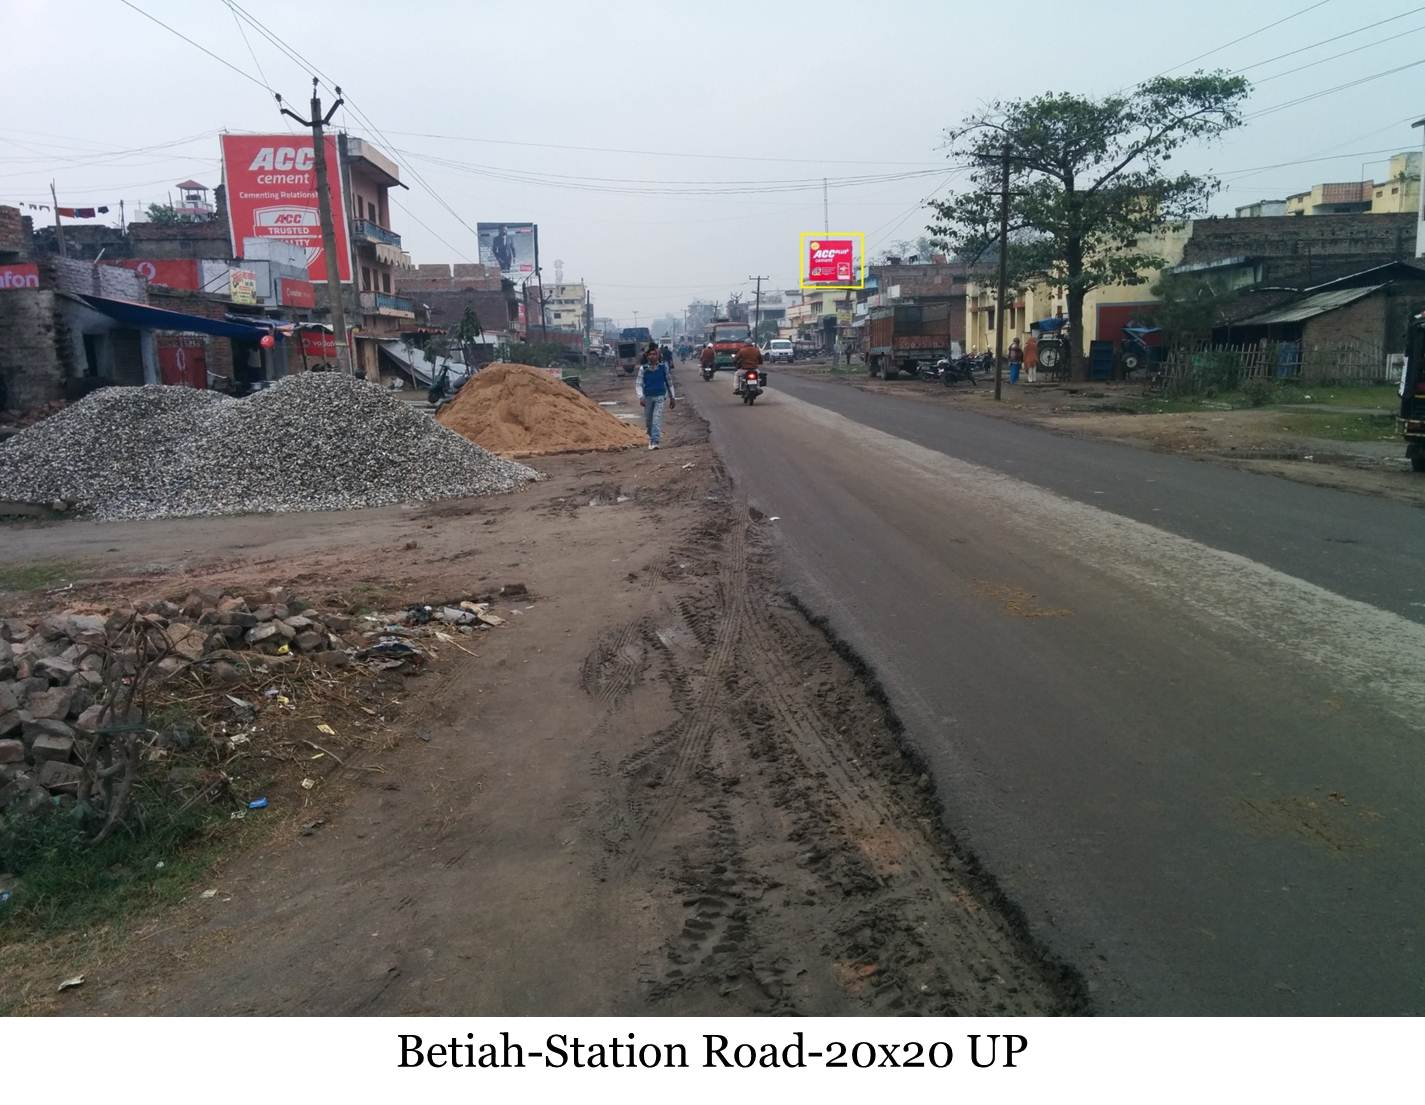 Station Road UP, Bettiah